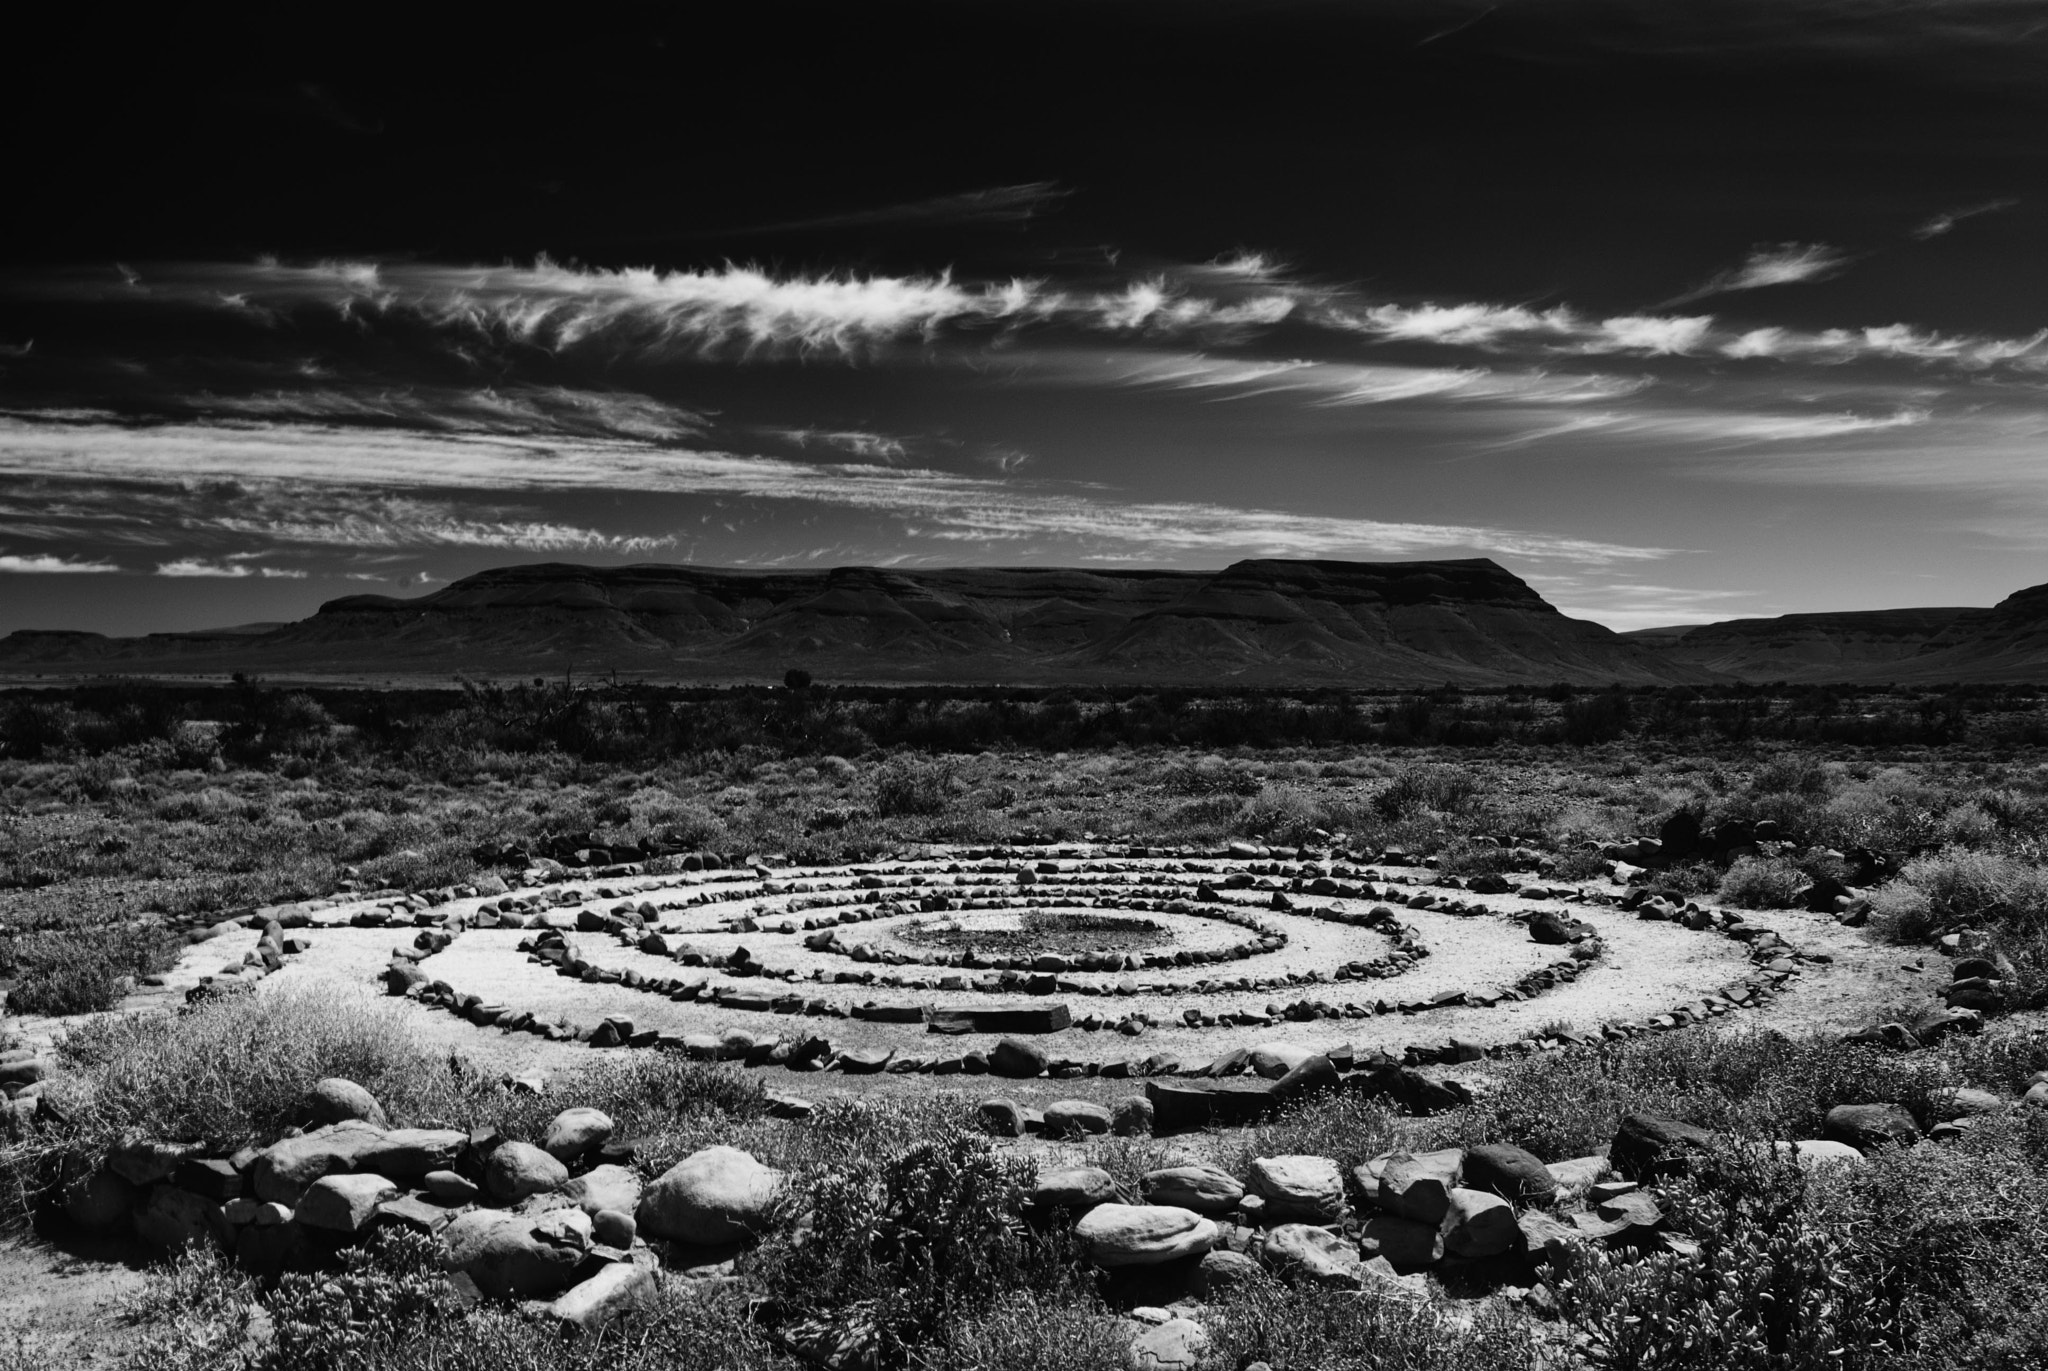 Photograph Circle of rocks by Pedré Havenga on 500px